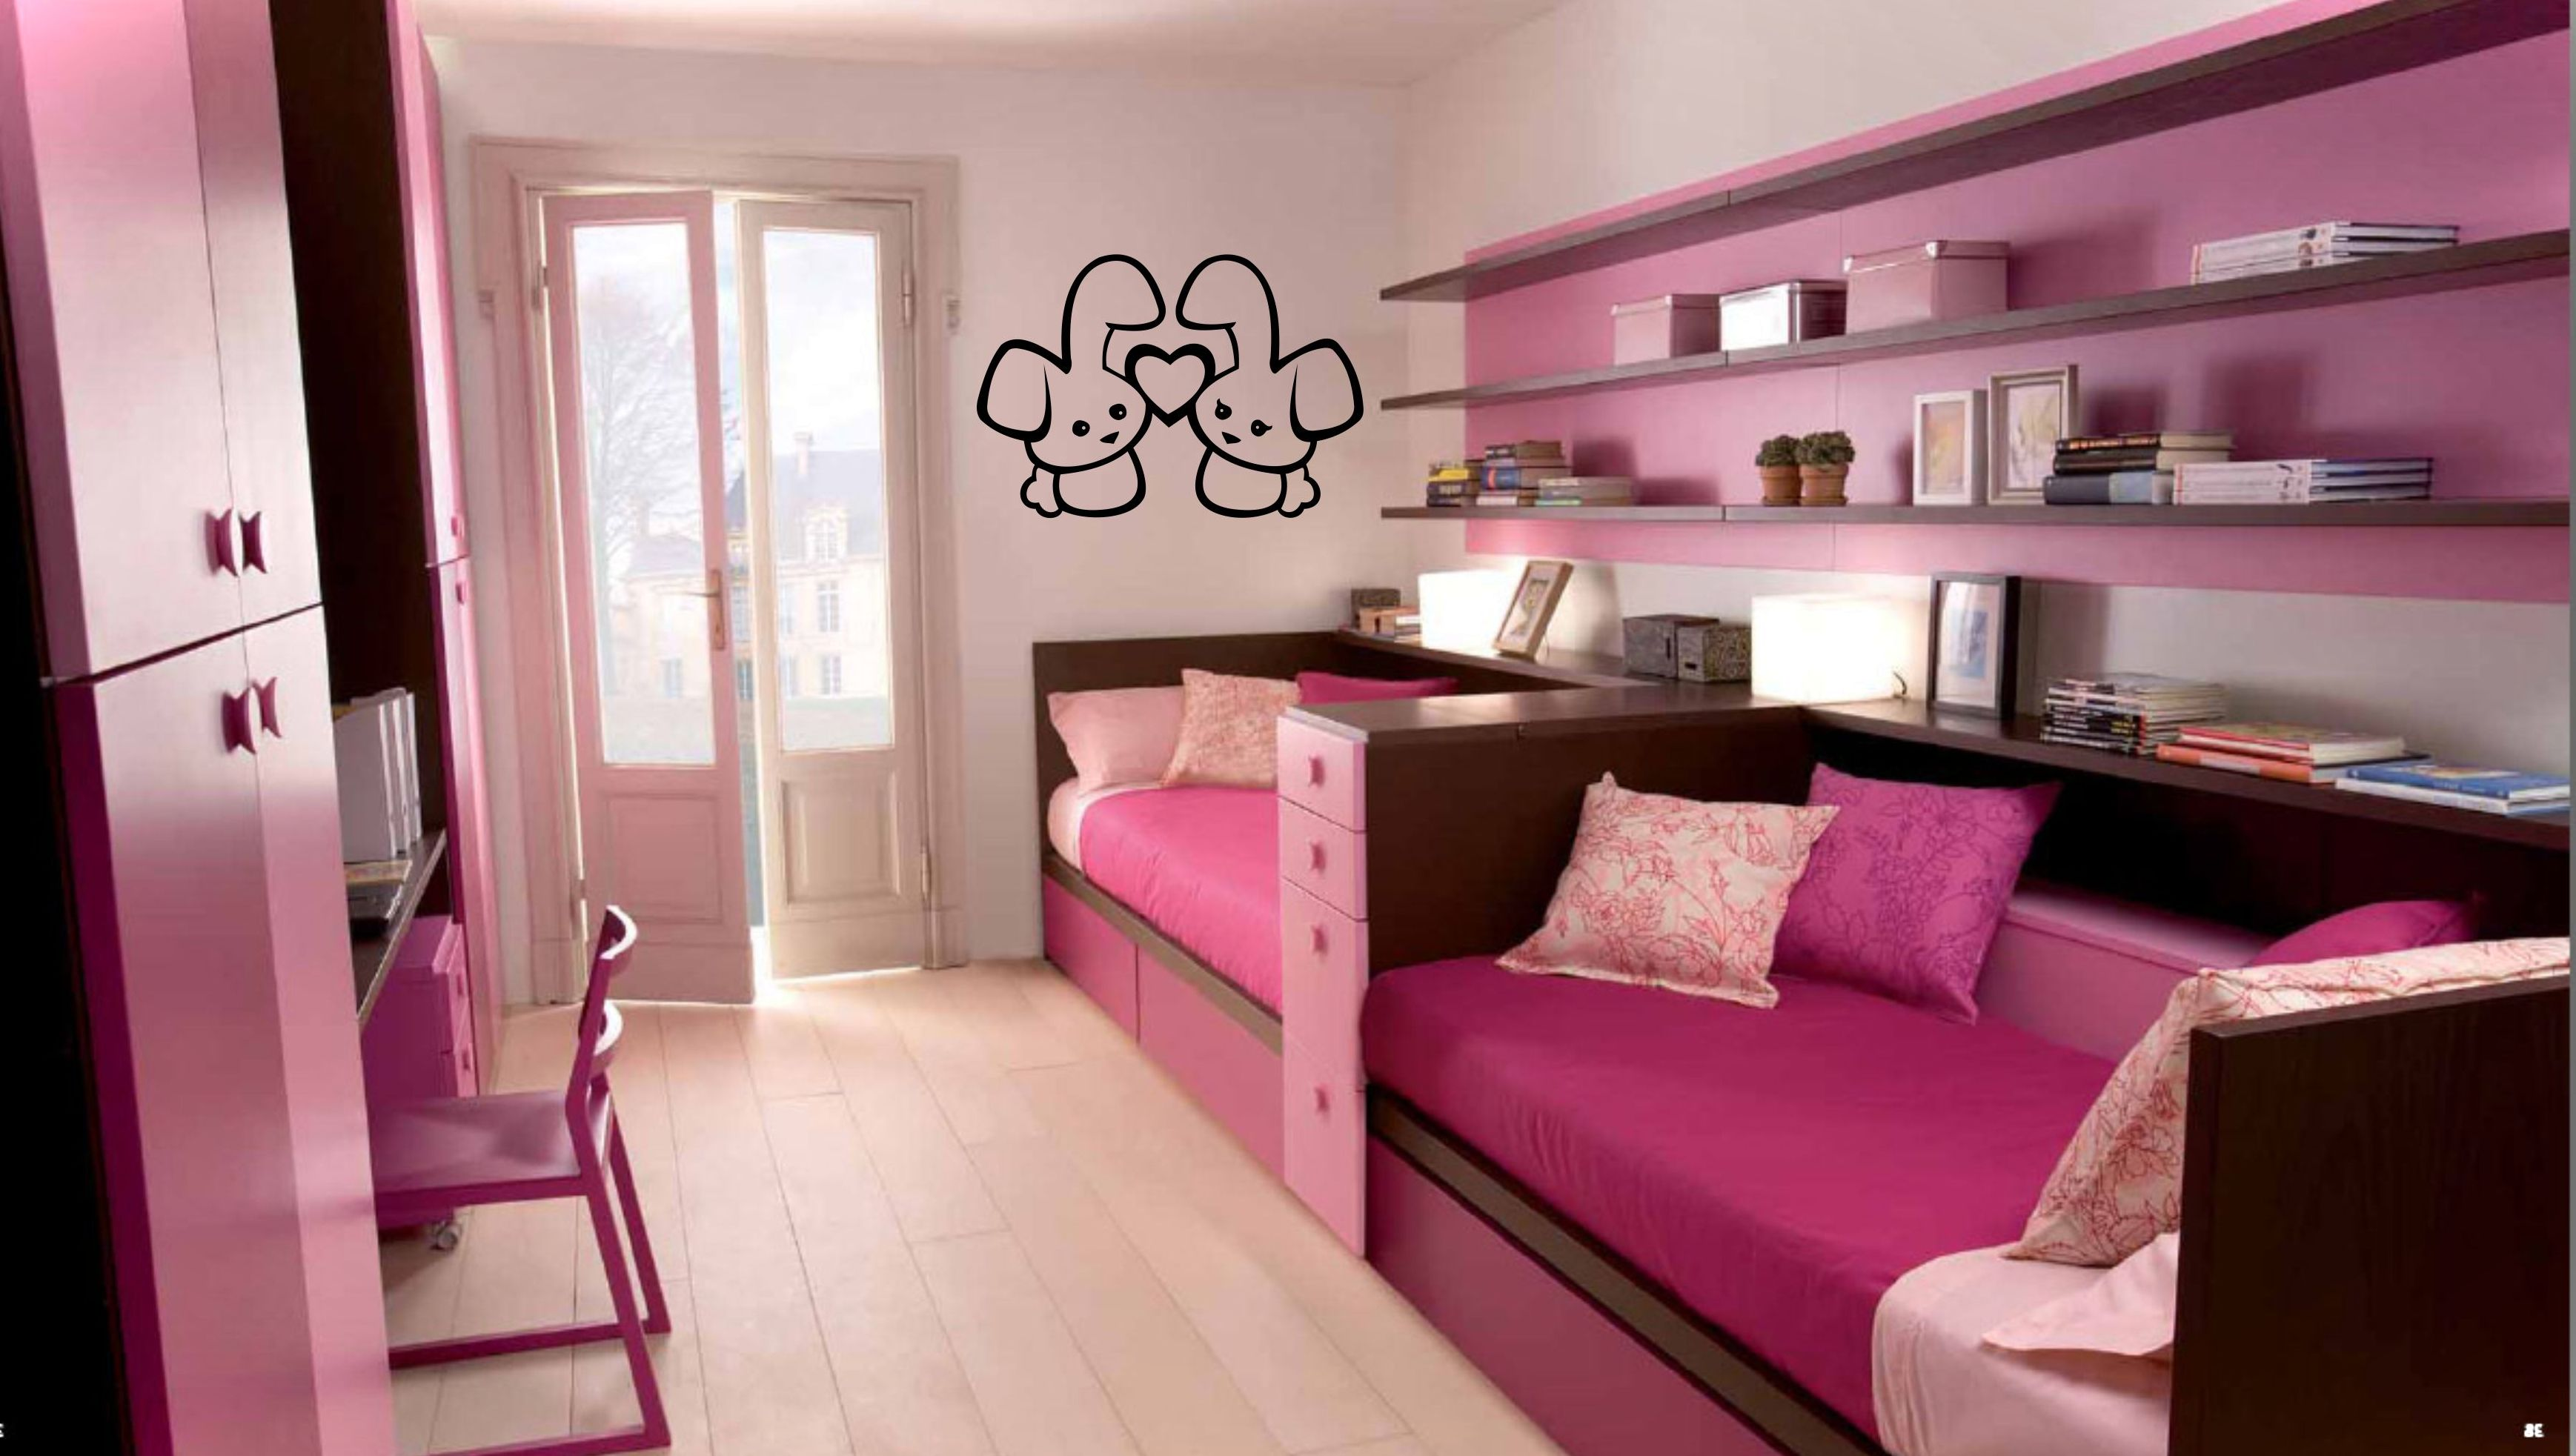 Charming Bedroom Interior for Girls with Bold Pink Accent for Furnishing  and Background Painting. Get Creative With These Girls Bedroom Ideas   MidCityEast